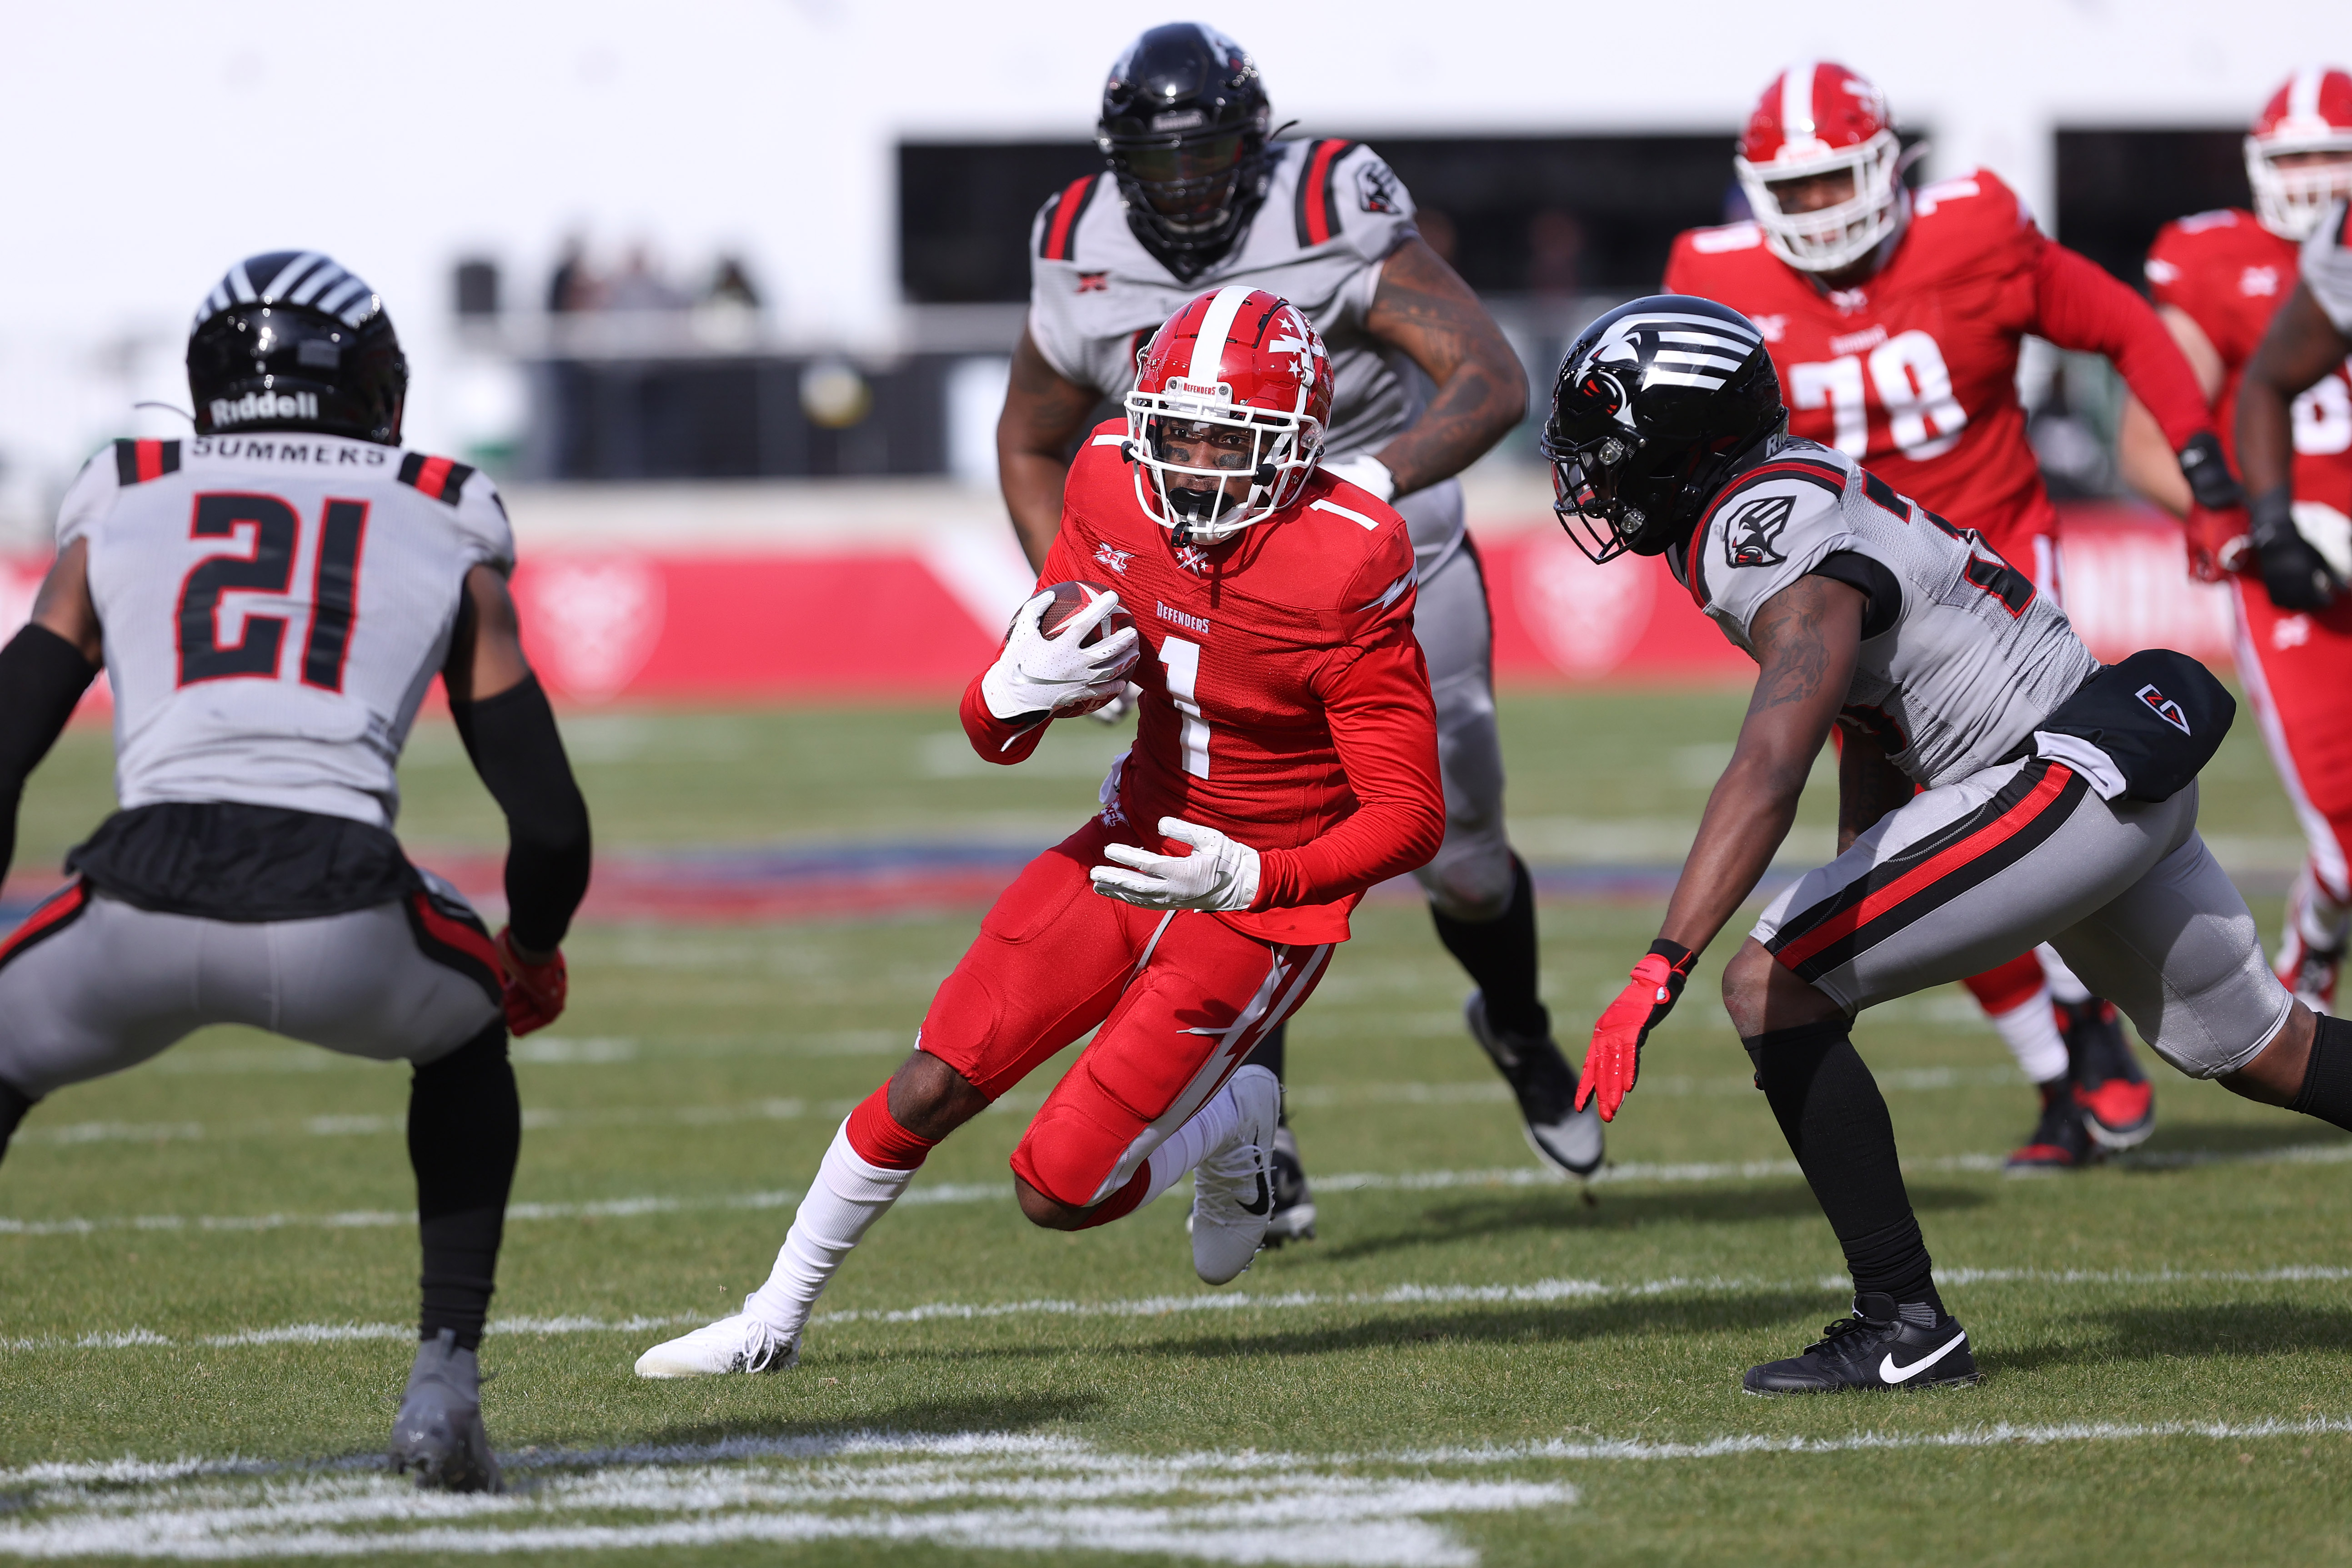 DC Defenders wide receiver DeAndre Thompkins runs with the pall as NY Guardians cornerback Jamar Summers and NY Guardians safety Andrew Soroh chase in the second quarter at Audi Field.